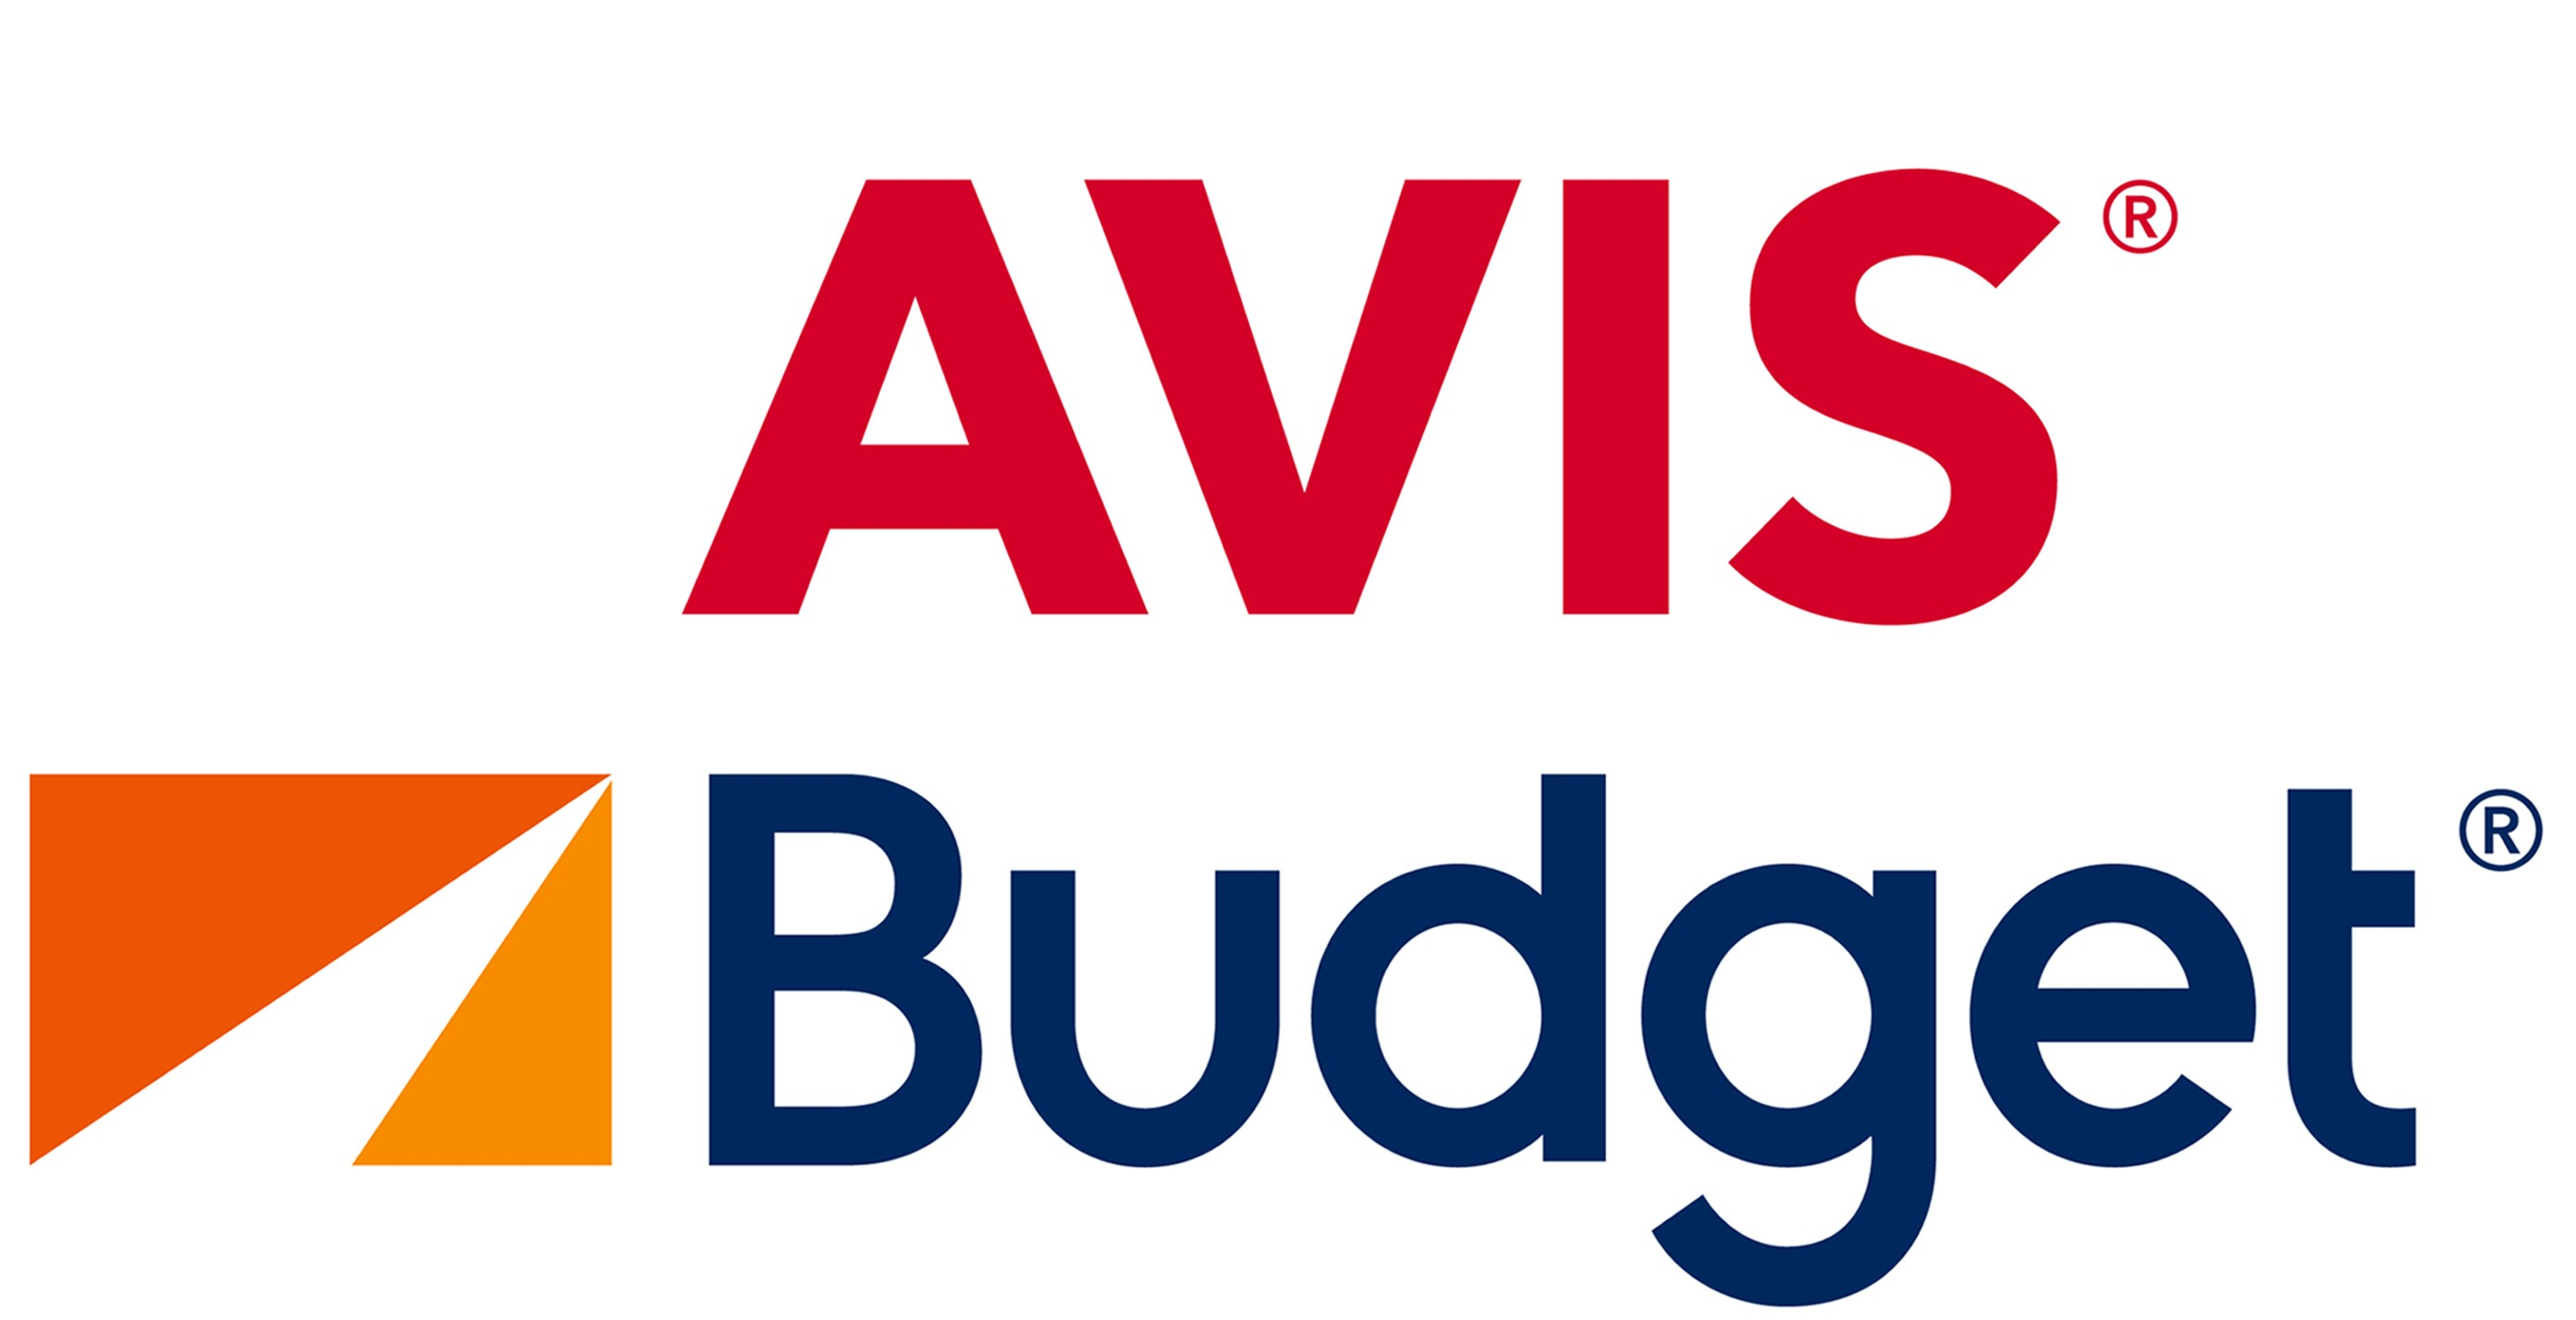 avis budget group why its demise is in sight avis. Black Bedroom Furniture Sets. Home Design Ideas